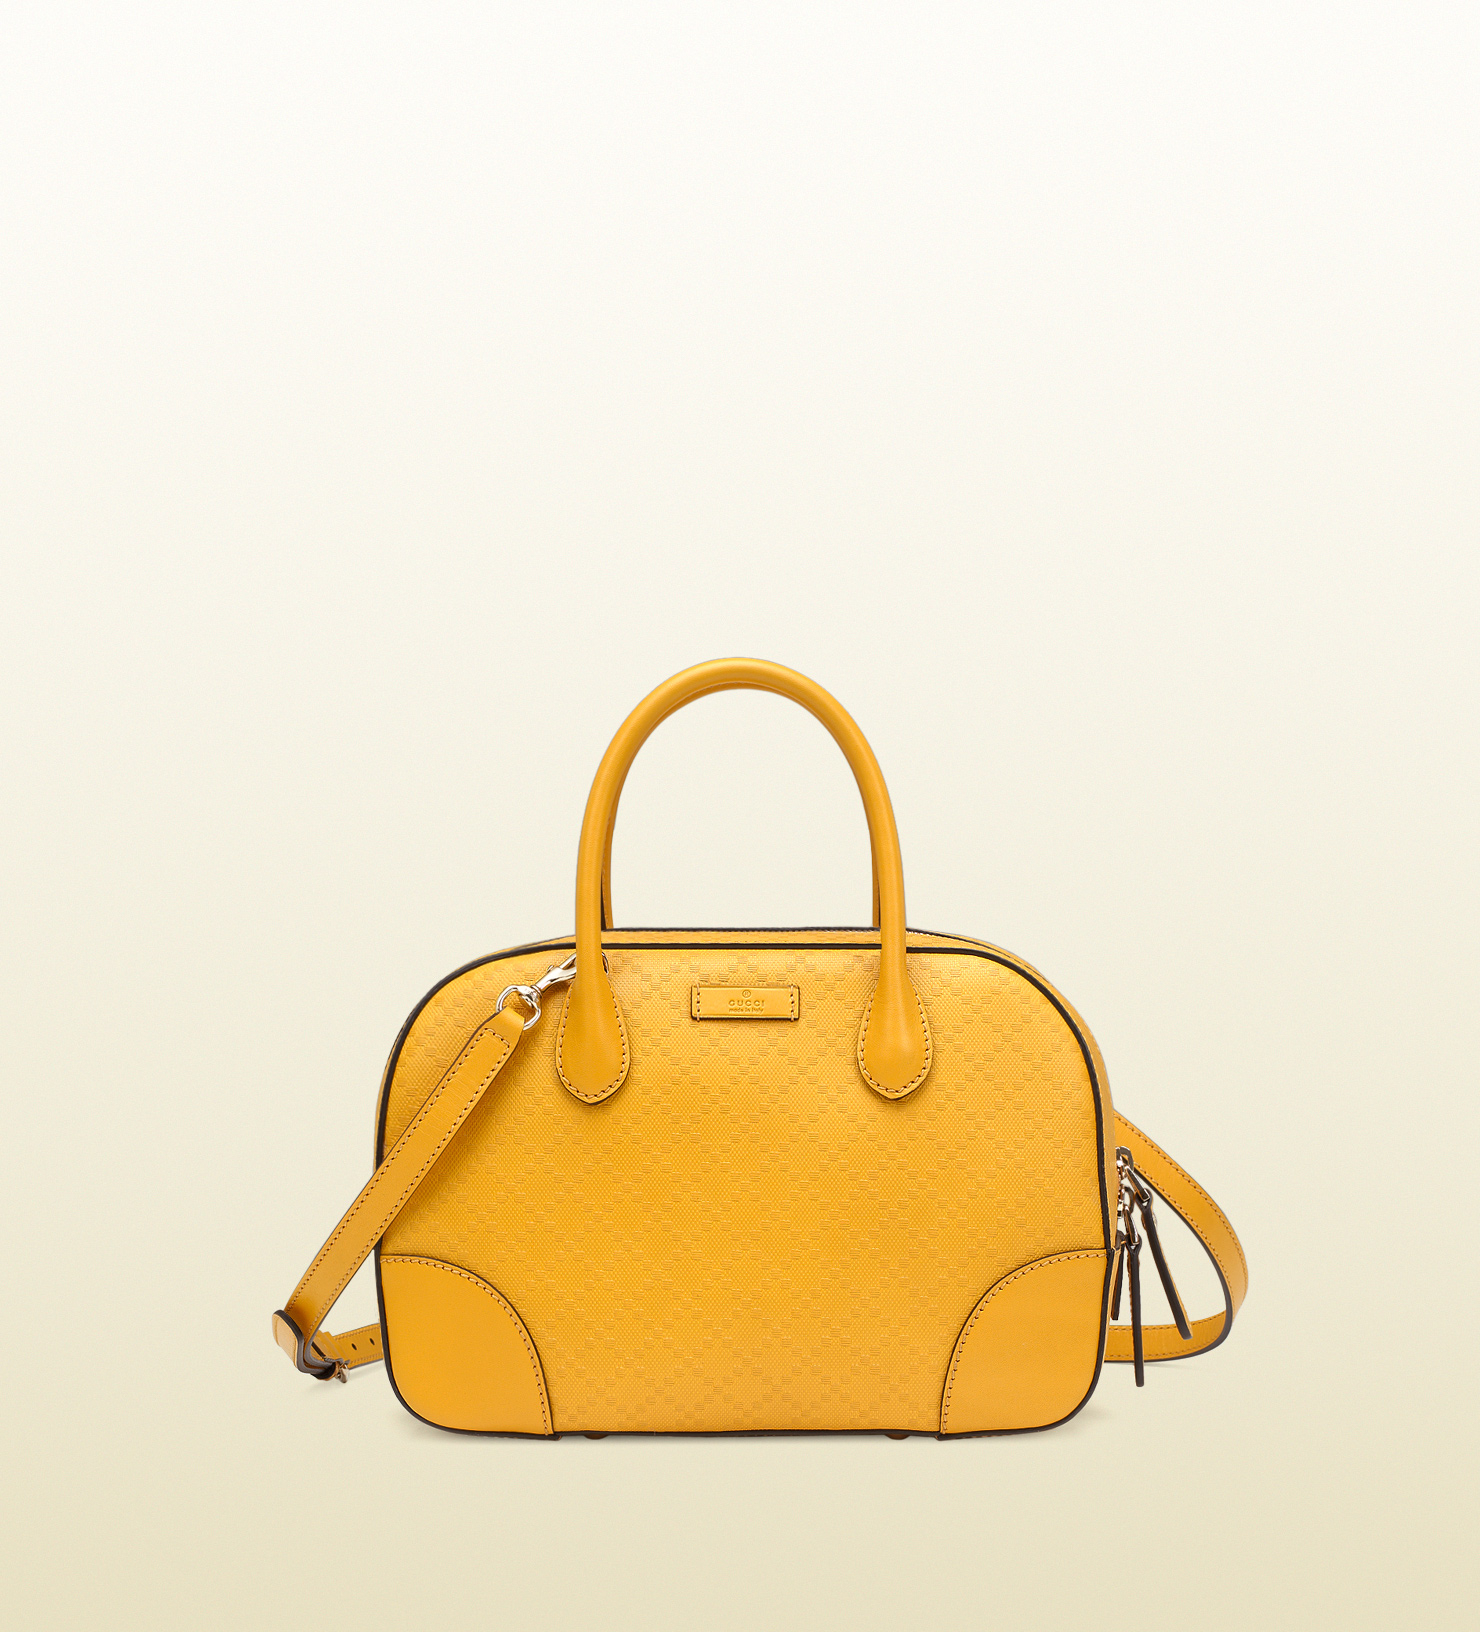 2581e3123fe3a4 Gucci Bright Diamante Leather Top Handle Bag in Yellow - Lyst